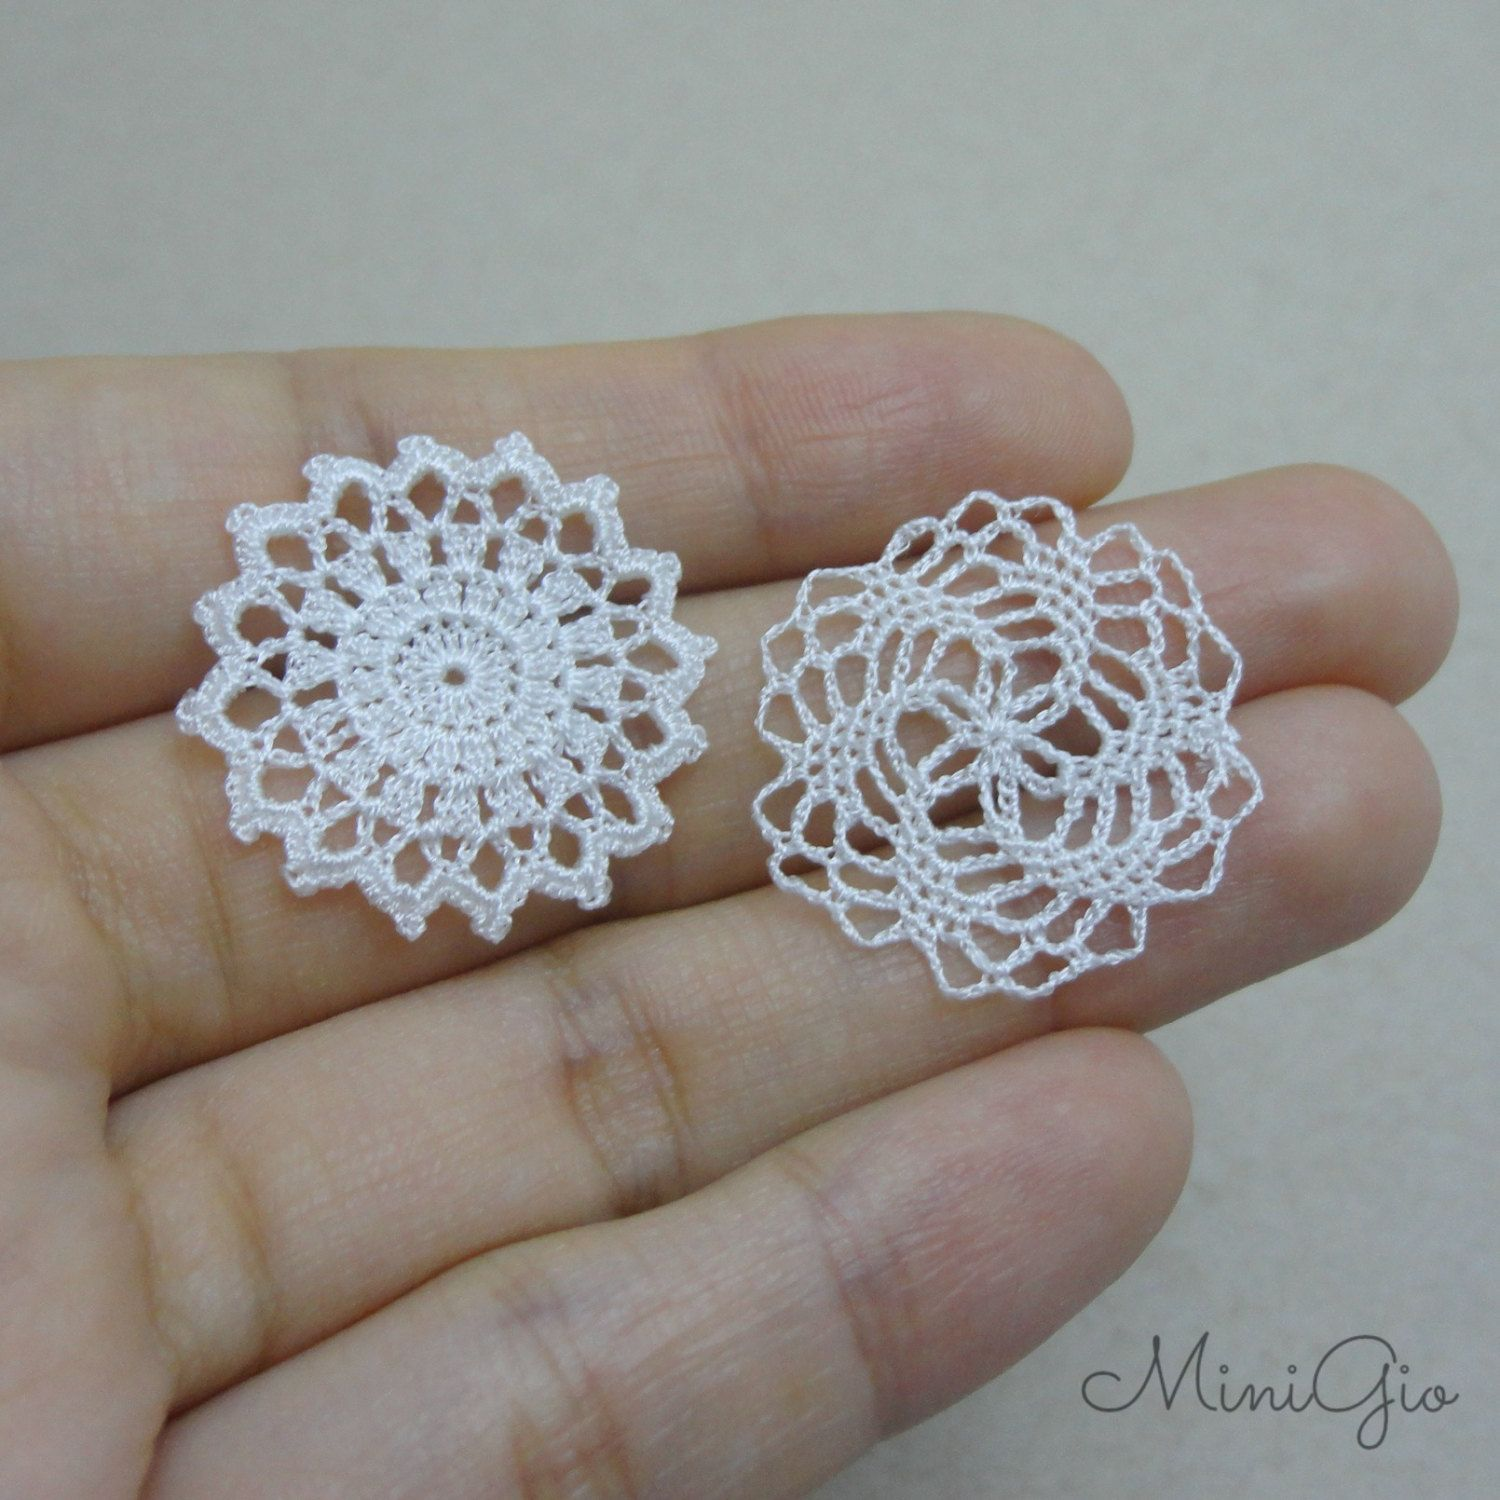 Two miniature crochet star doily 112 dollhouse by minigio on etsy two miniature crochet star doily 112 dollhouse by minigio on etsy bankloansurffo Images